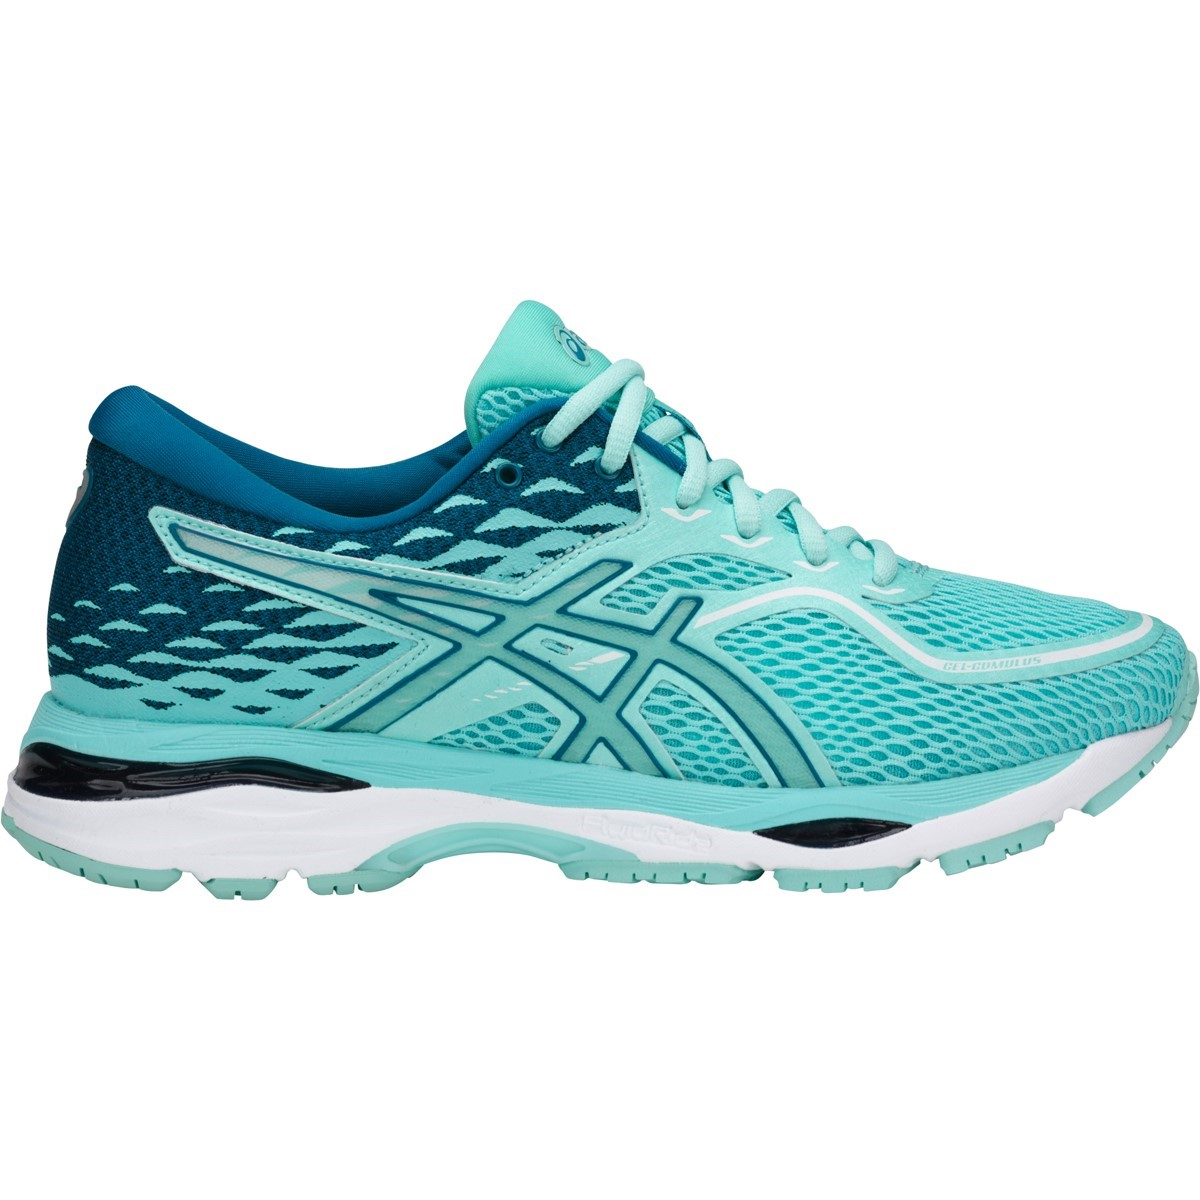 c4c5df47034 Asics Gel Cumulus 19 - Womens Running Shoes - Aruba Blue Turkish Tile